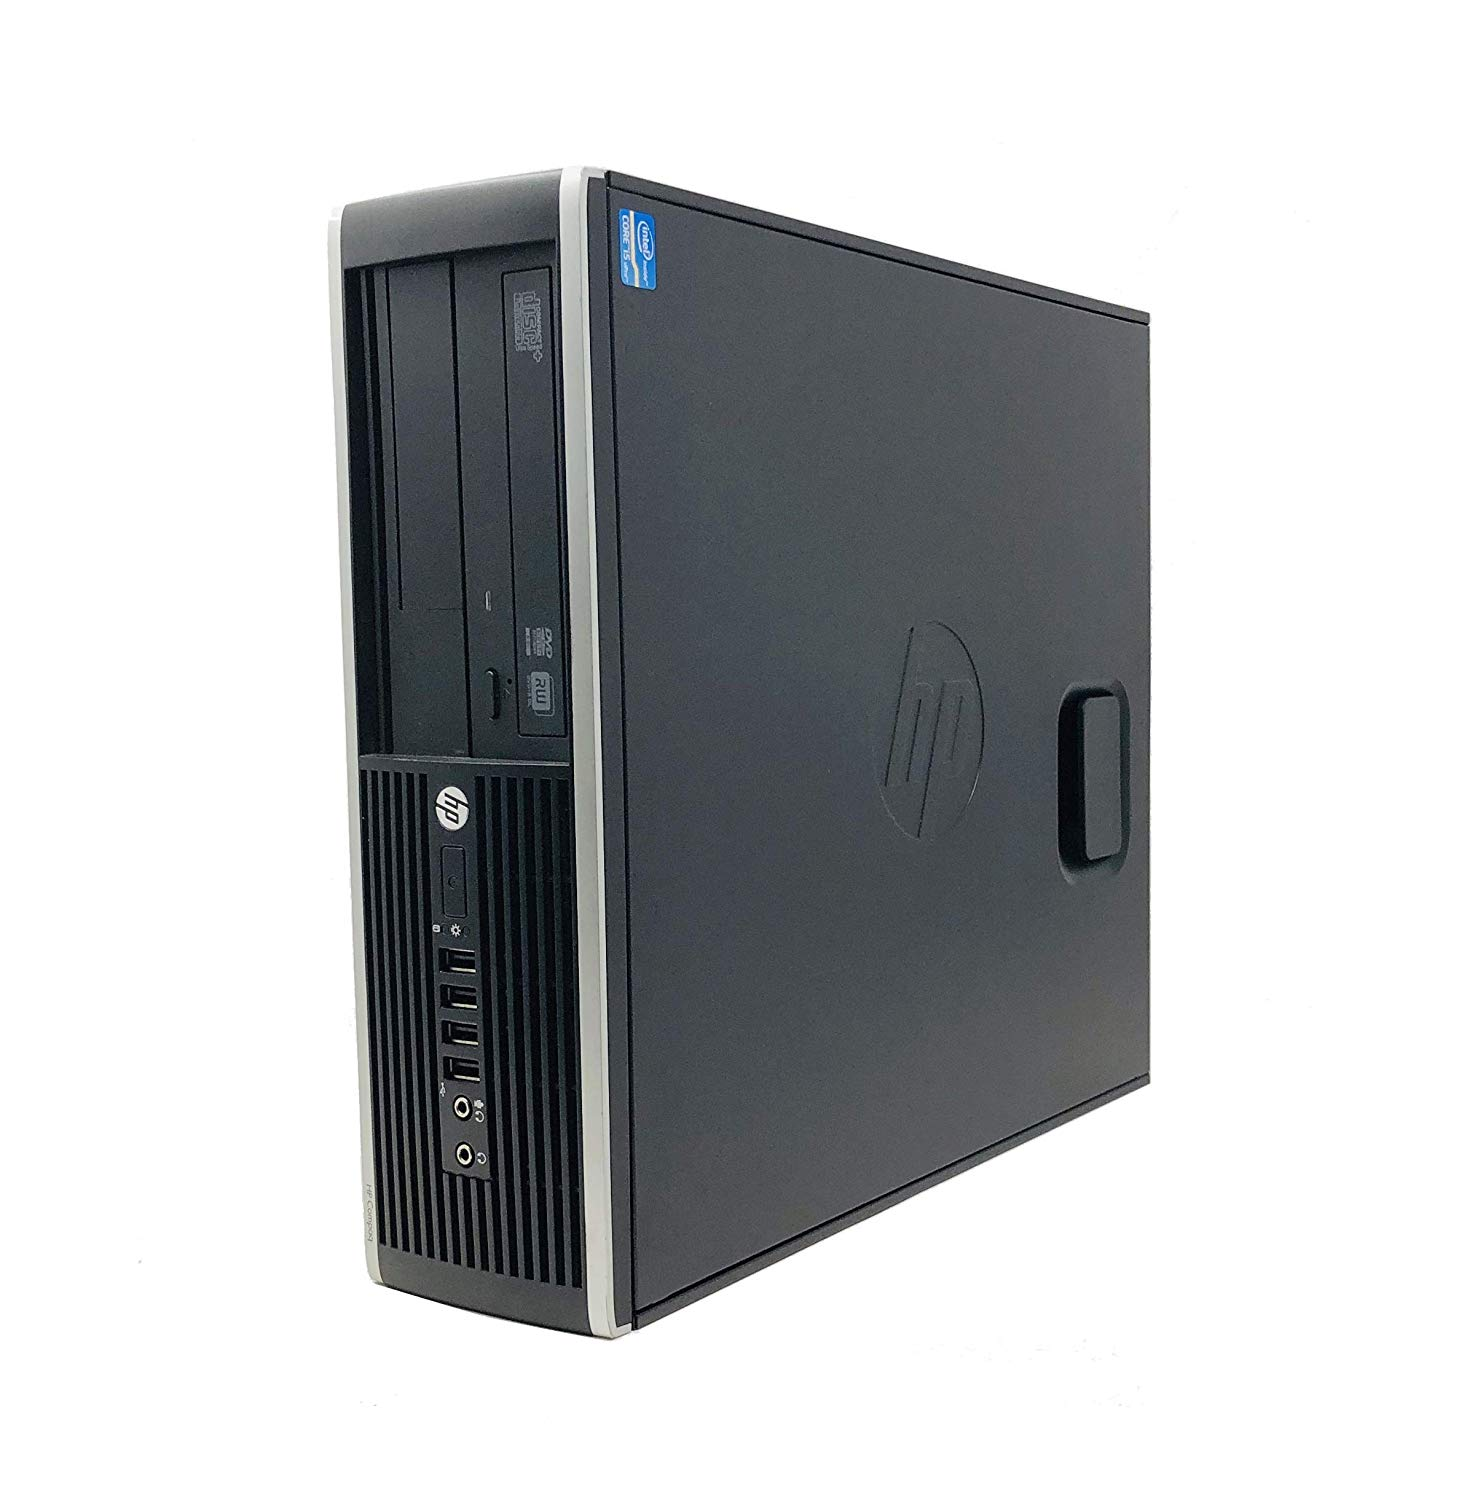 Hp Elite 8200 - Ordenador de sobremesa (<font><b>Intel</b></font> <font><b>i5</b></font>-<font><b>2400</b></font>, Sin Lector 8GB de RAM, Disco SSD de 960GB , Windows 7 PRO ) - Negro (Reacondicionado) image